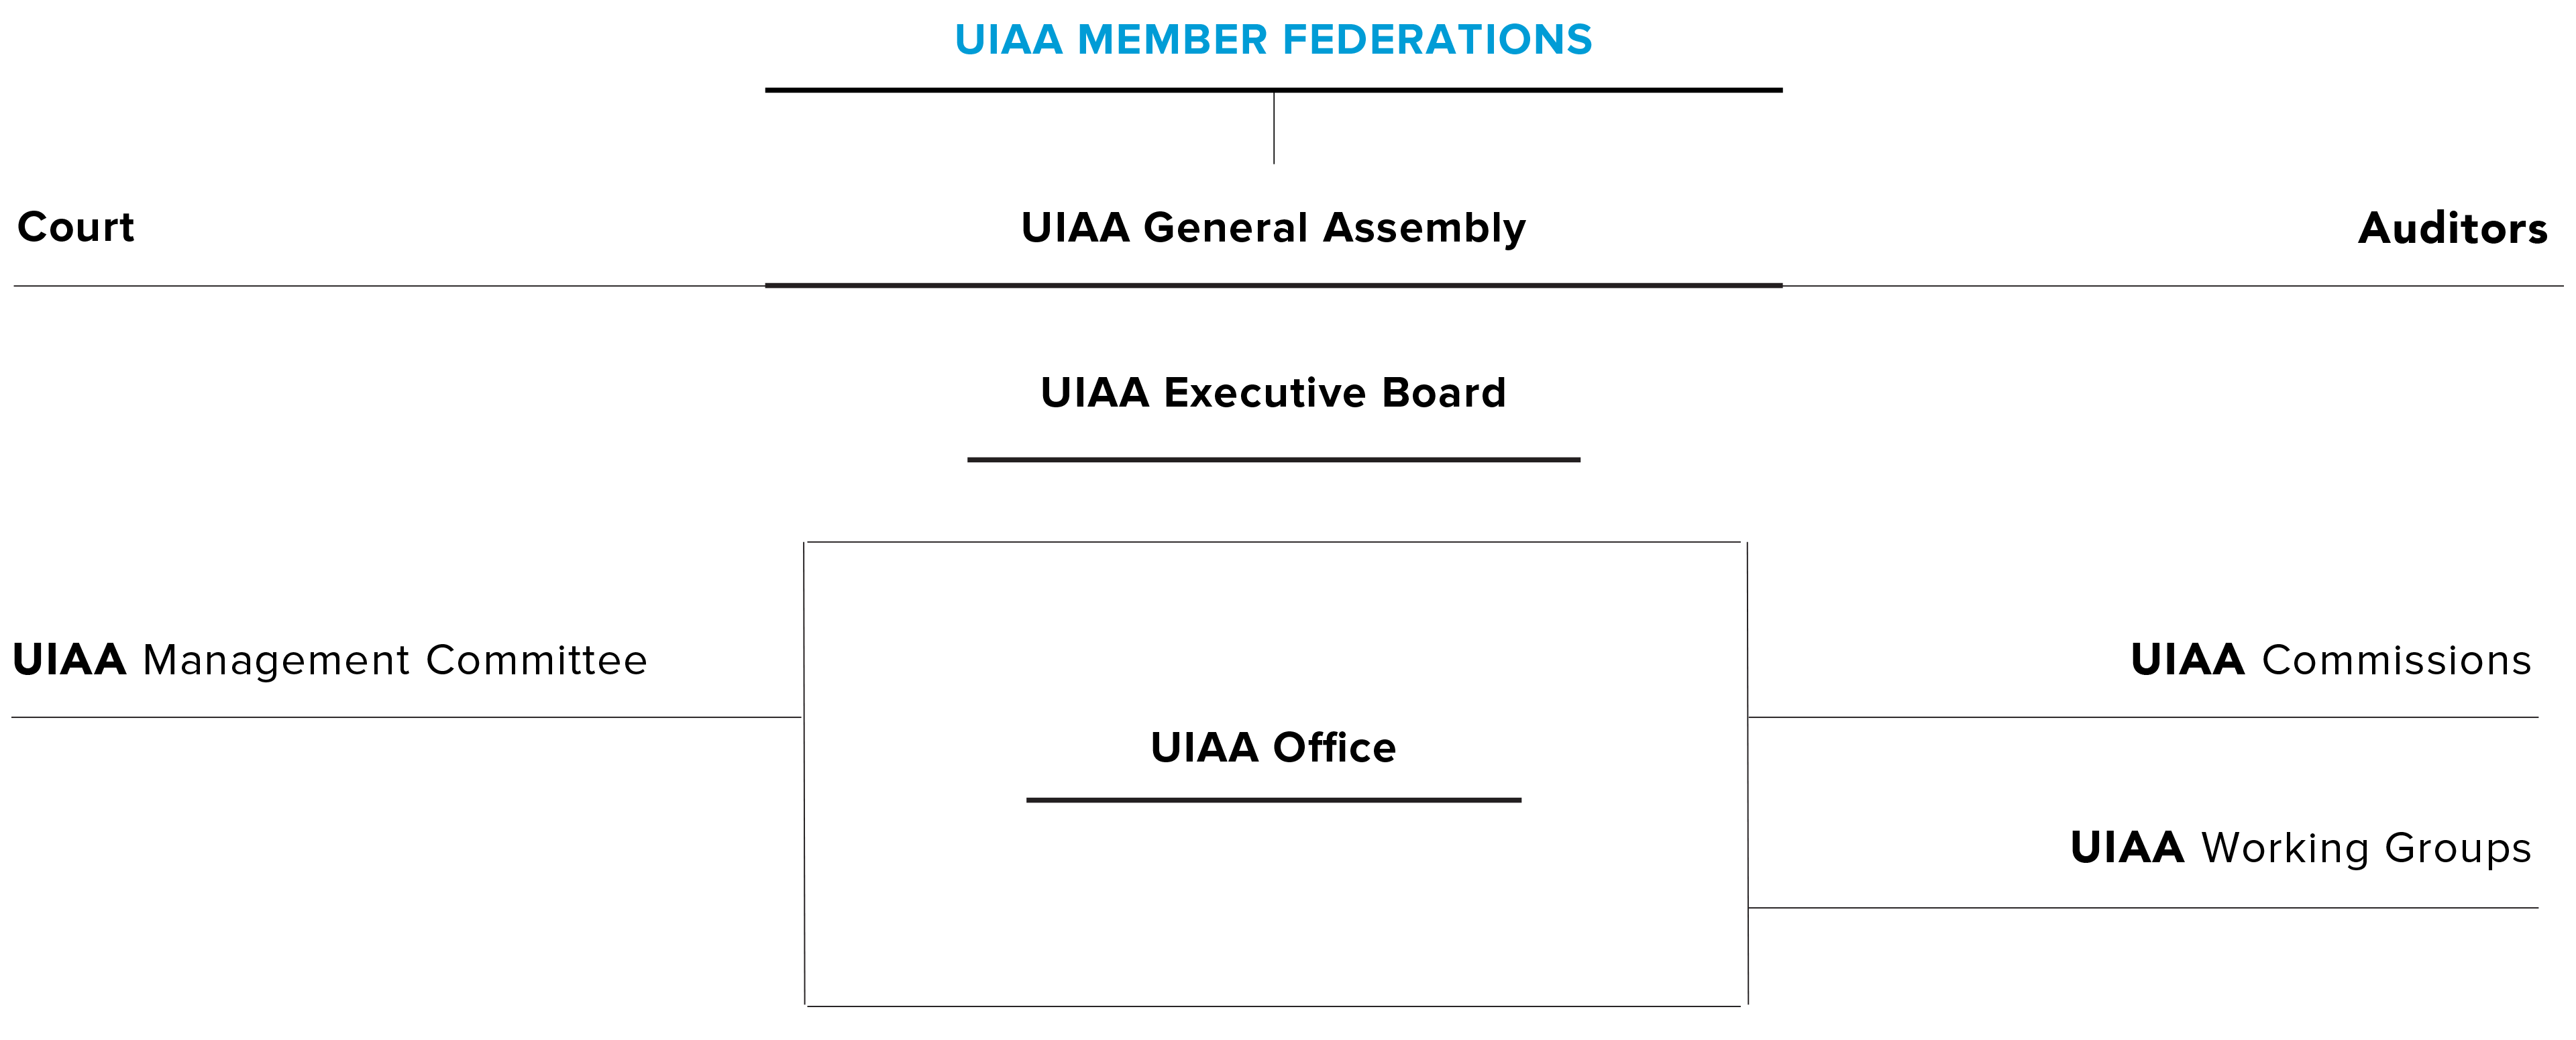 The UIAA Organisation Chat